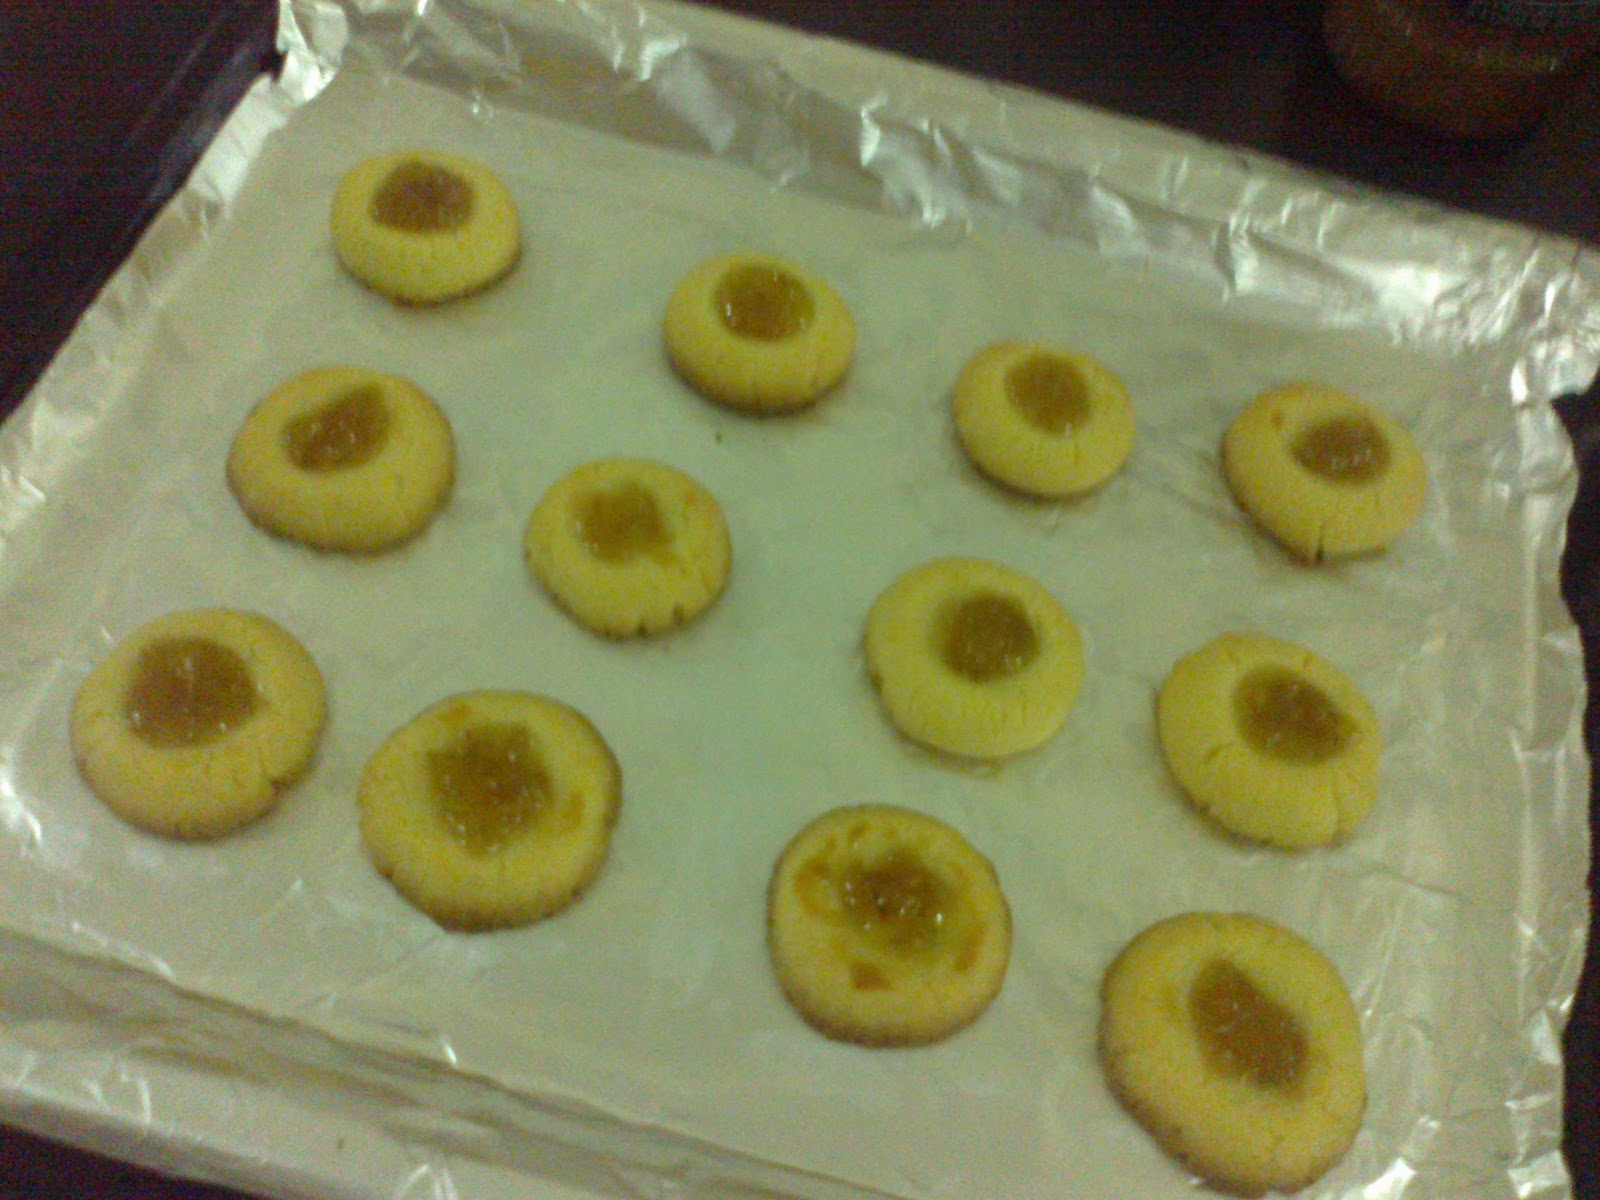 ... Archive: KITCHEN厨房日记: Thumbprint Cookies with Jam Filling